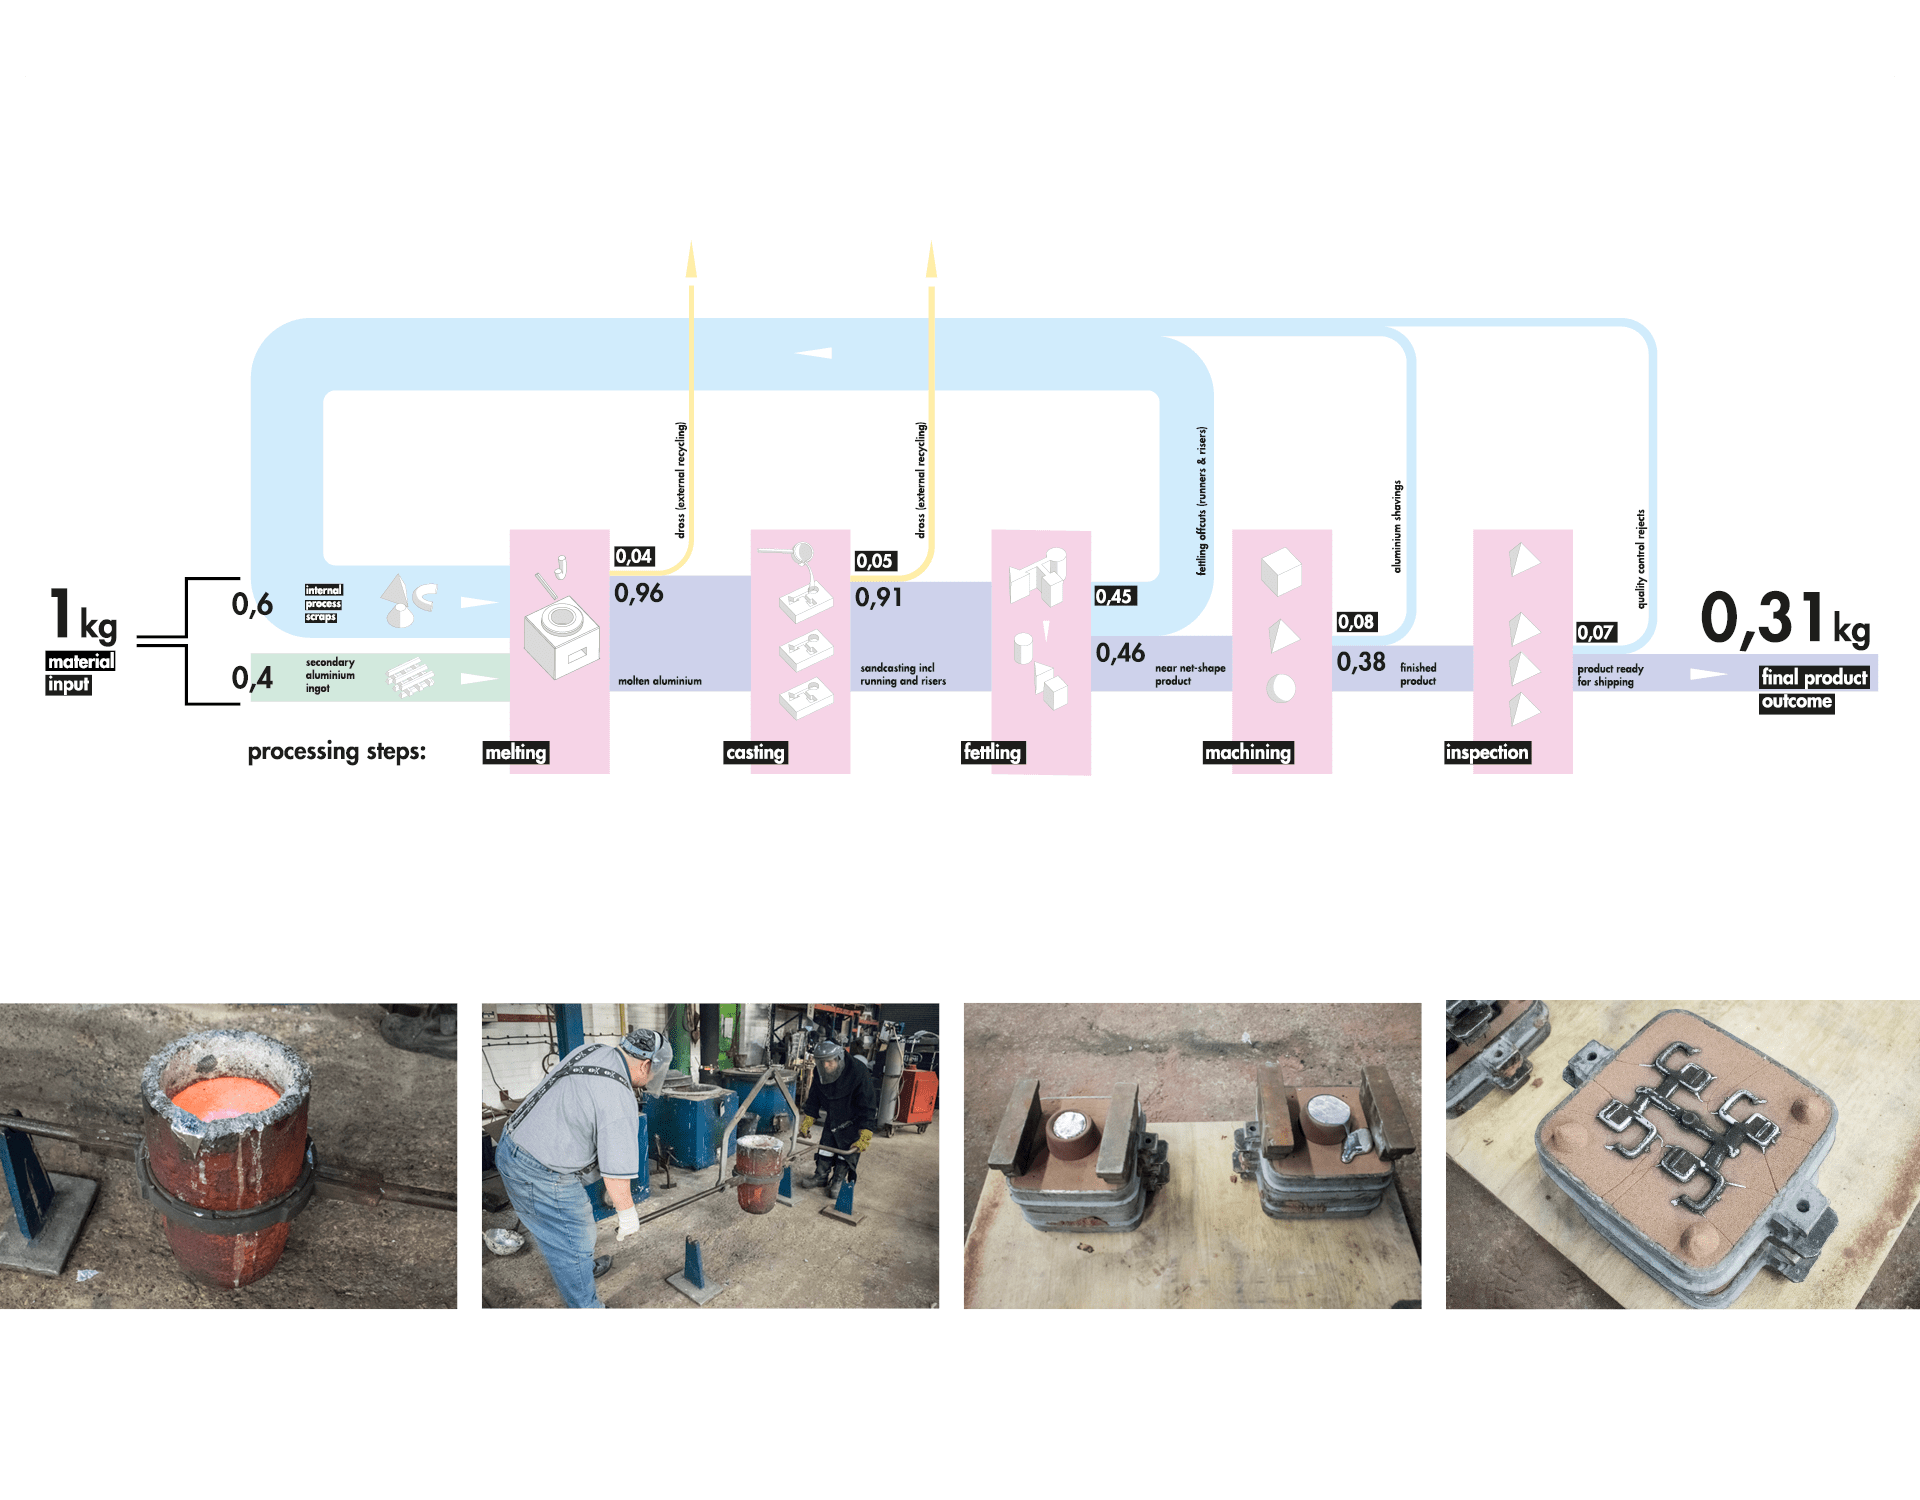 foundry processes & life cycle assessment